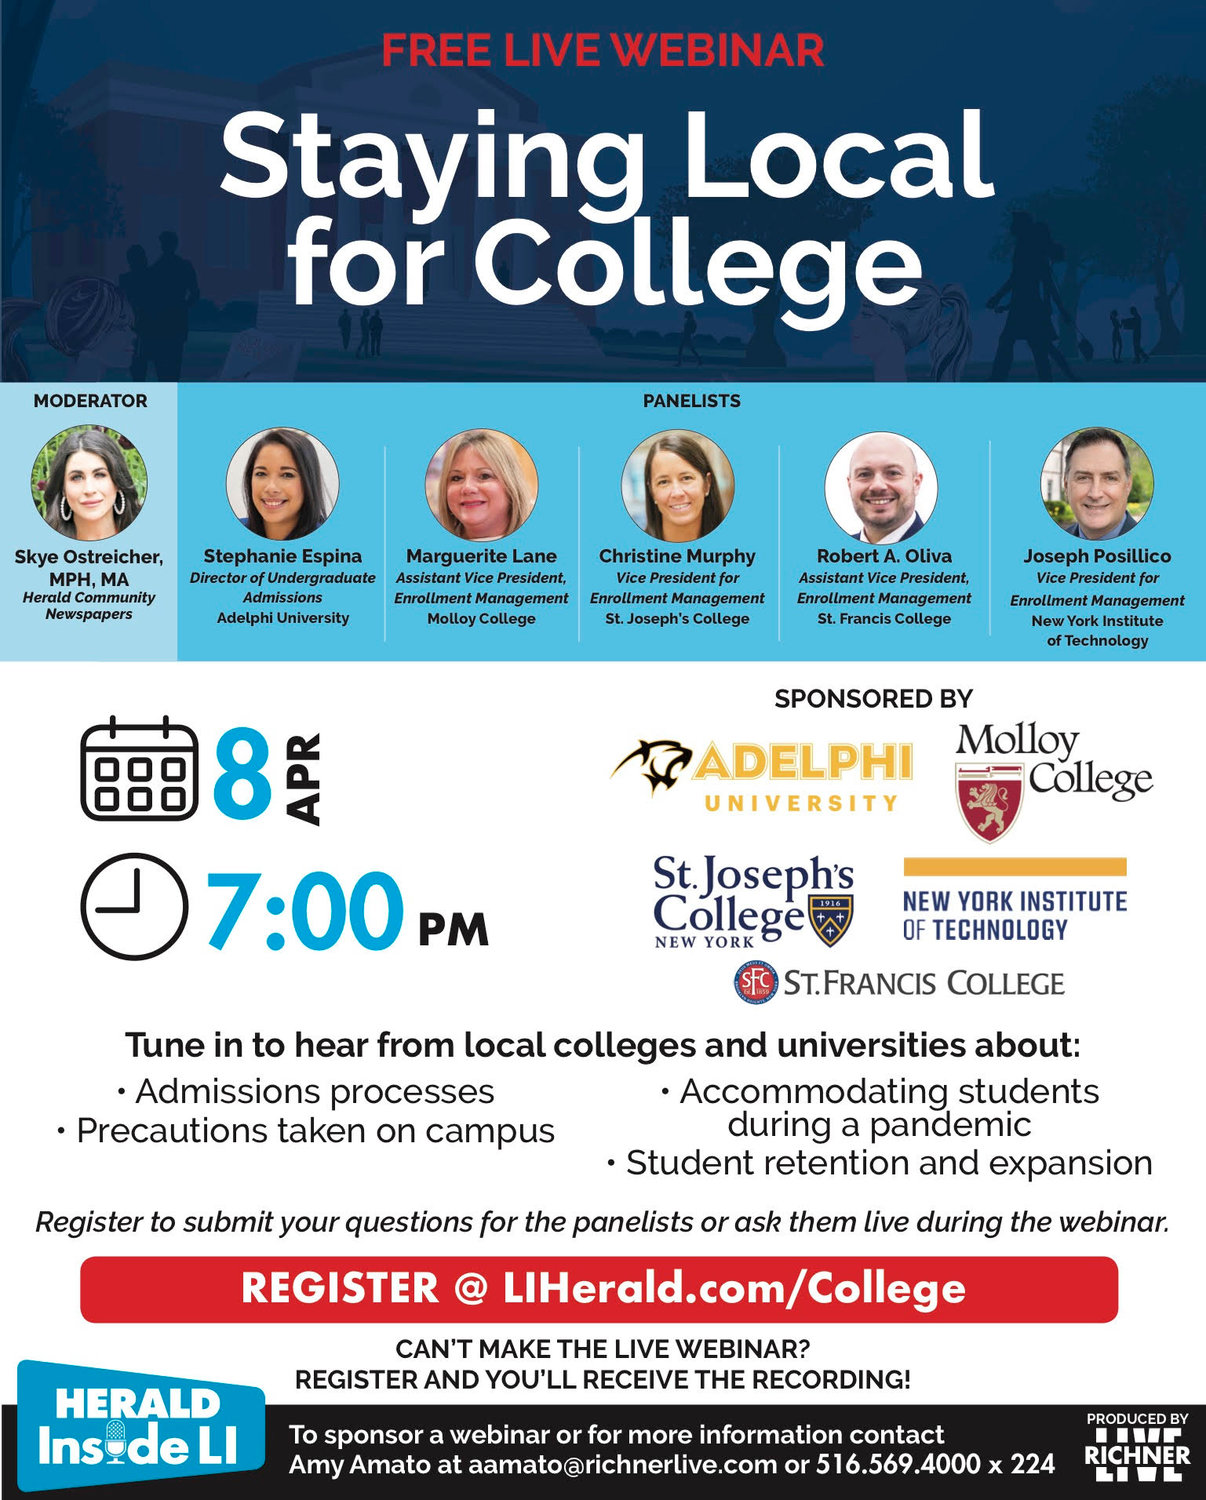 Herald Inside LI will host a staying local for college informational webinar April 8 at 7 p.m.